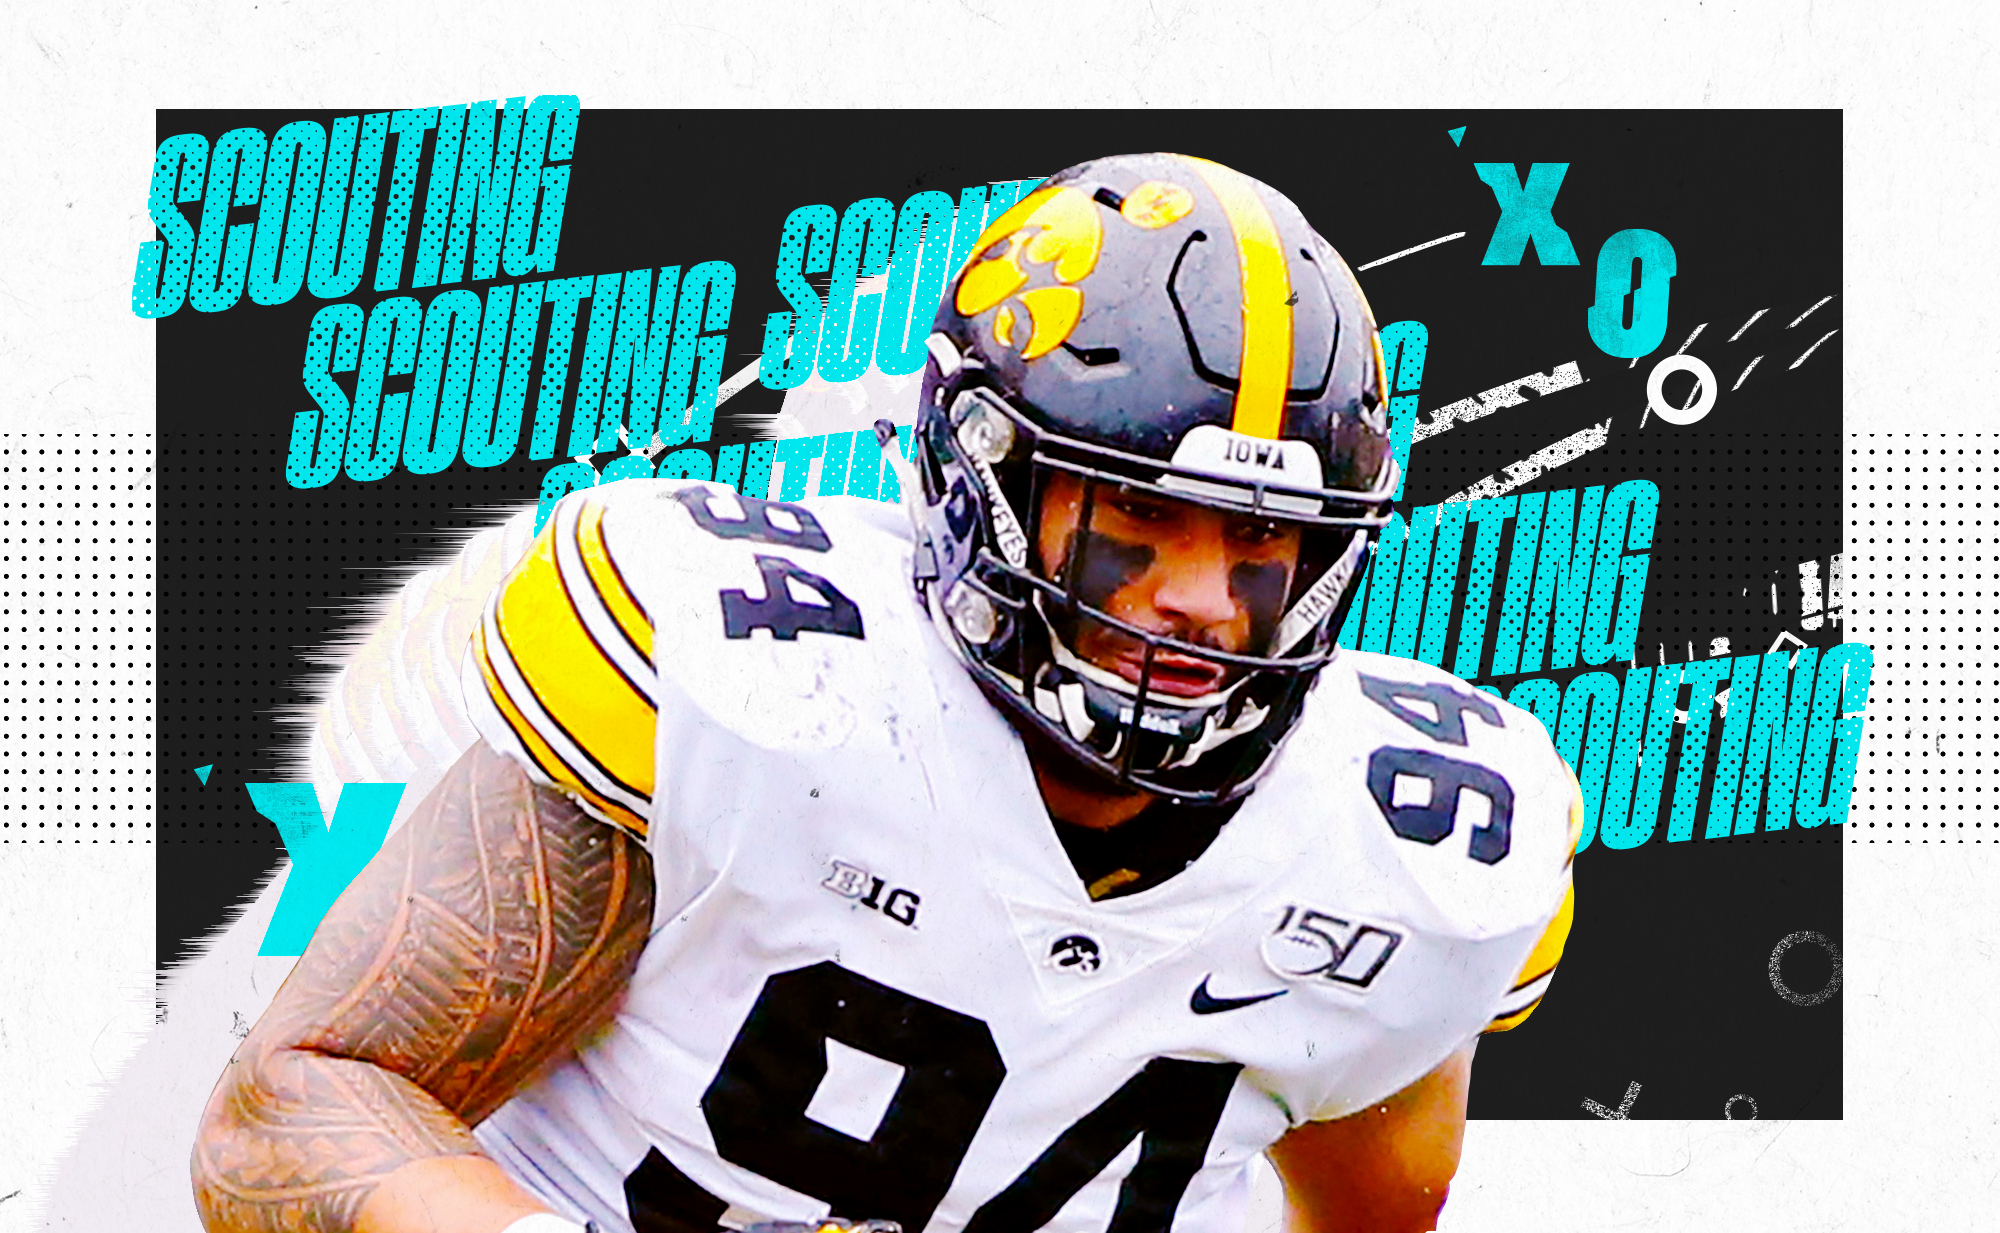 """An illustration of NFL DE prospect AJ Epenesa at Iowa, superimposed on a black and white background with """"SCOUTING"""" and """"X""""s and """"O""""s in aqua lettering"""